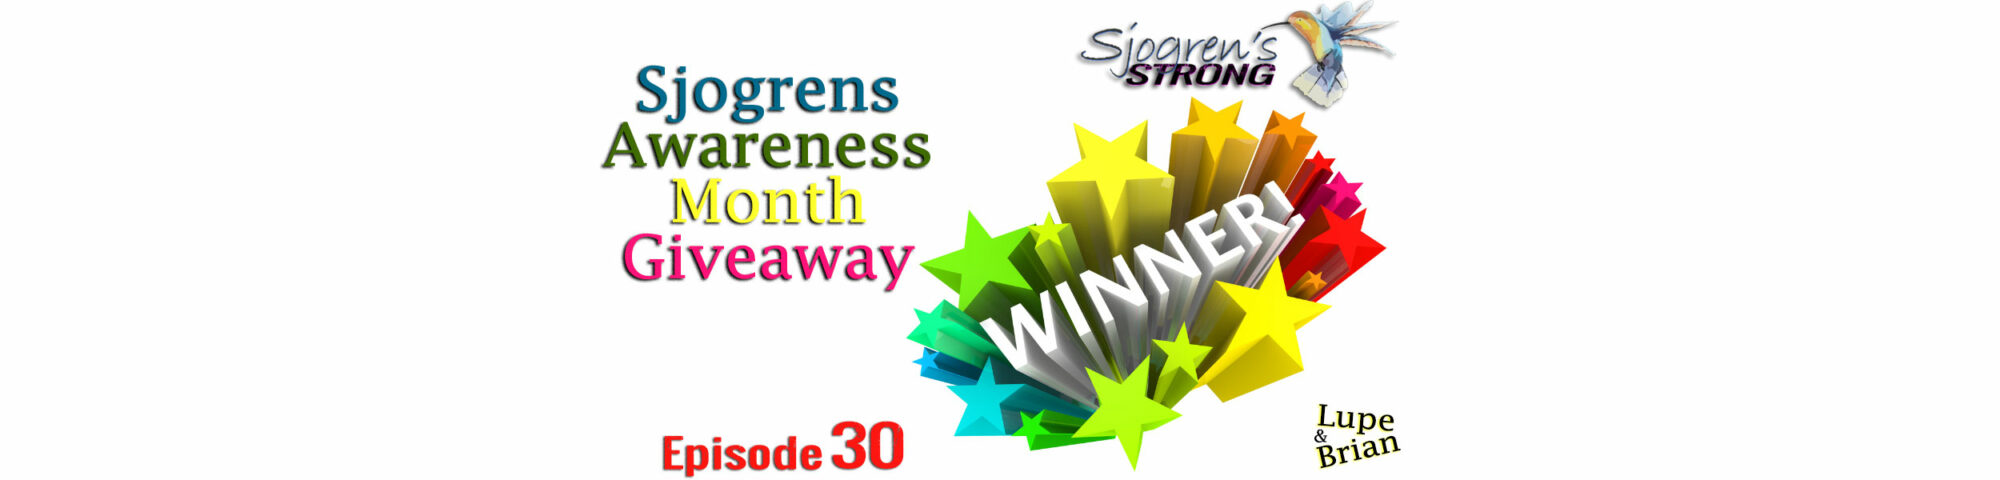 Sjogren's Awareness Month Giveaway, Winners!